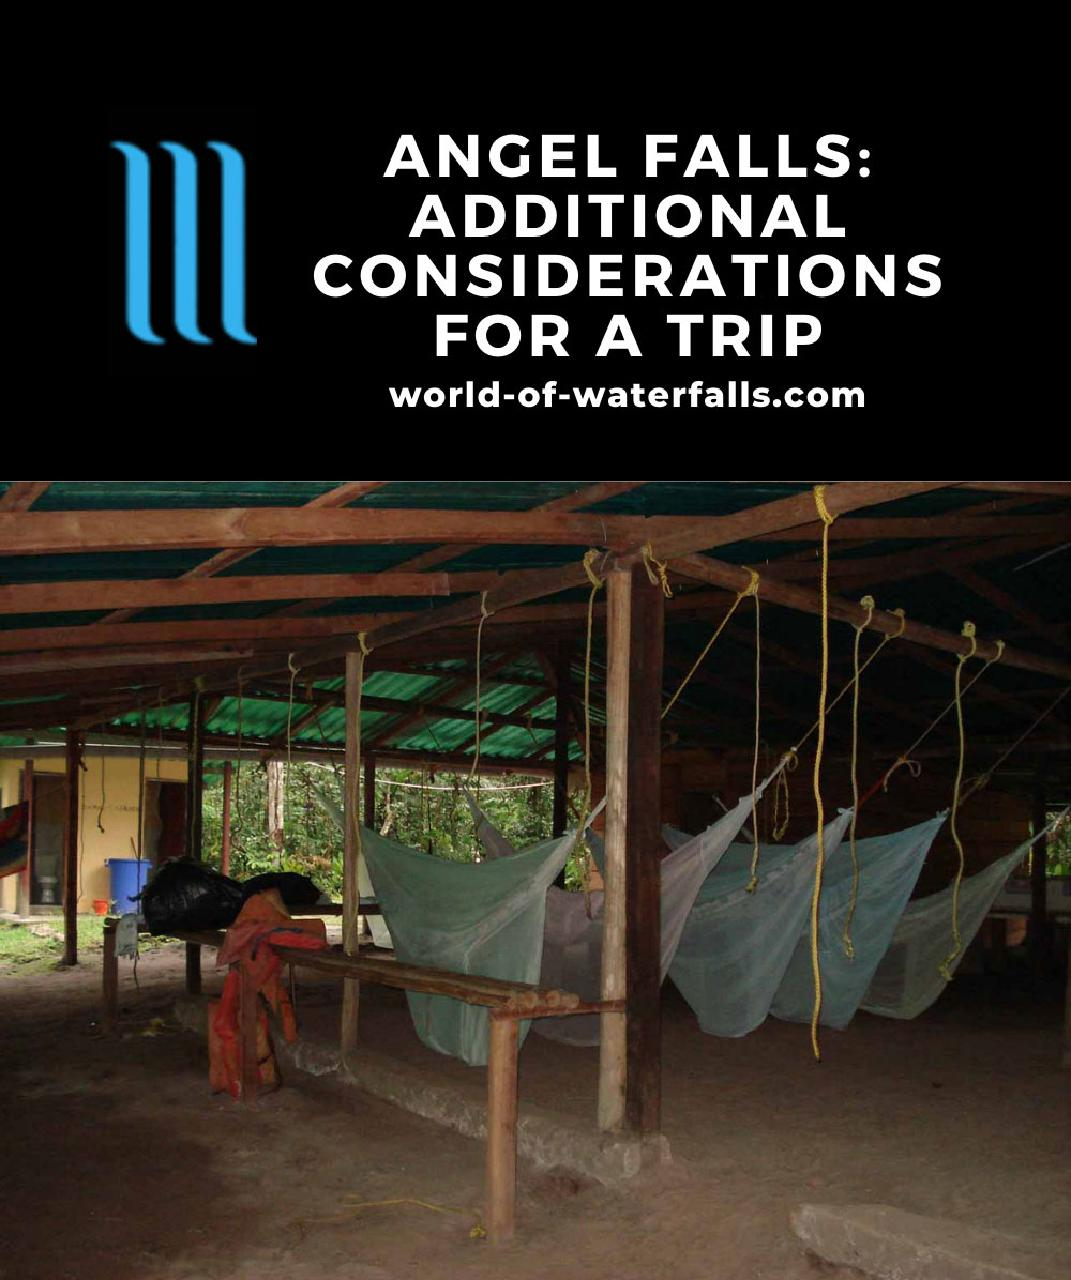 Angel Falls: Additional Considerations for a Trip